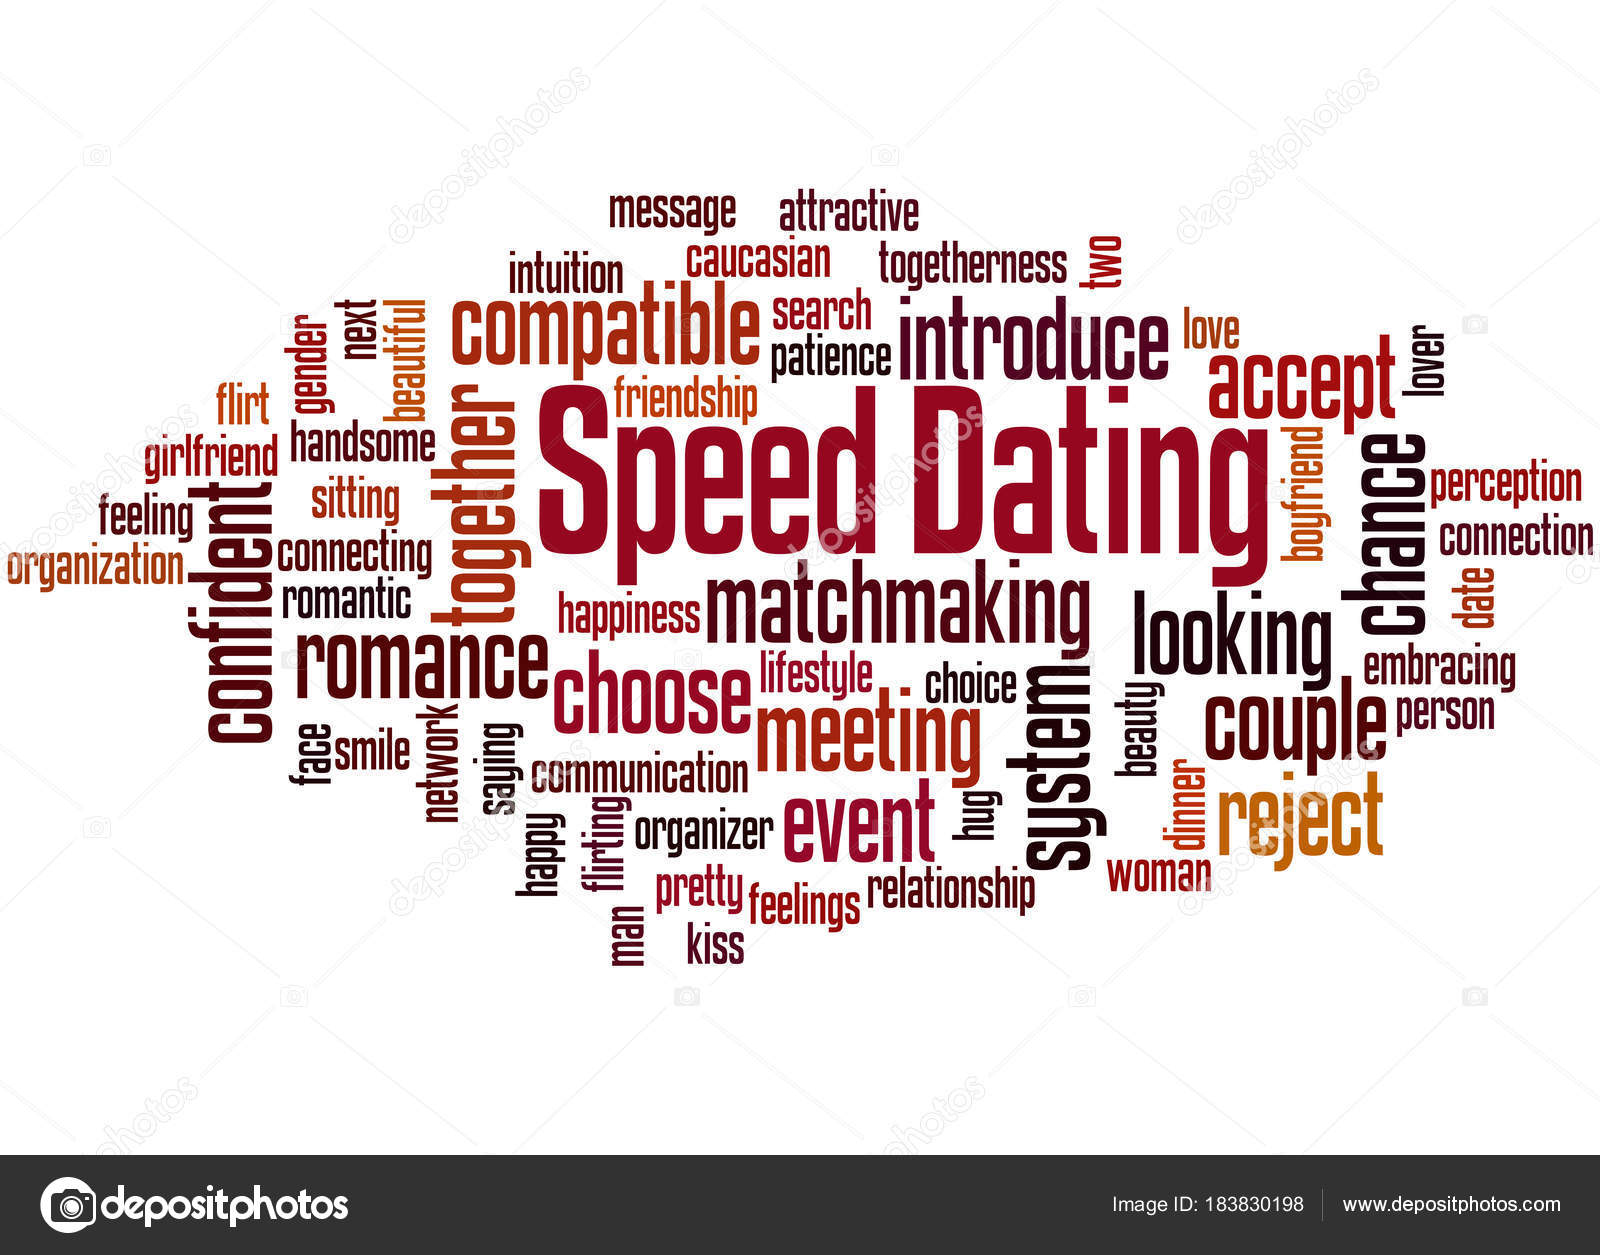 speed dating word